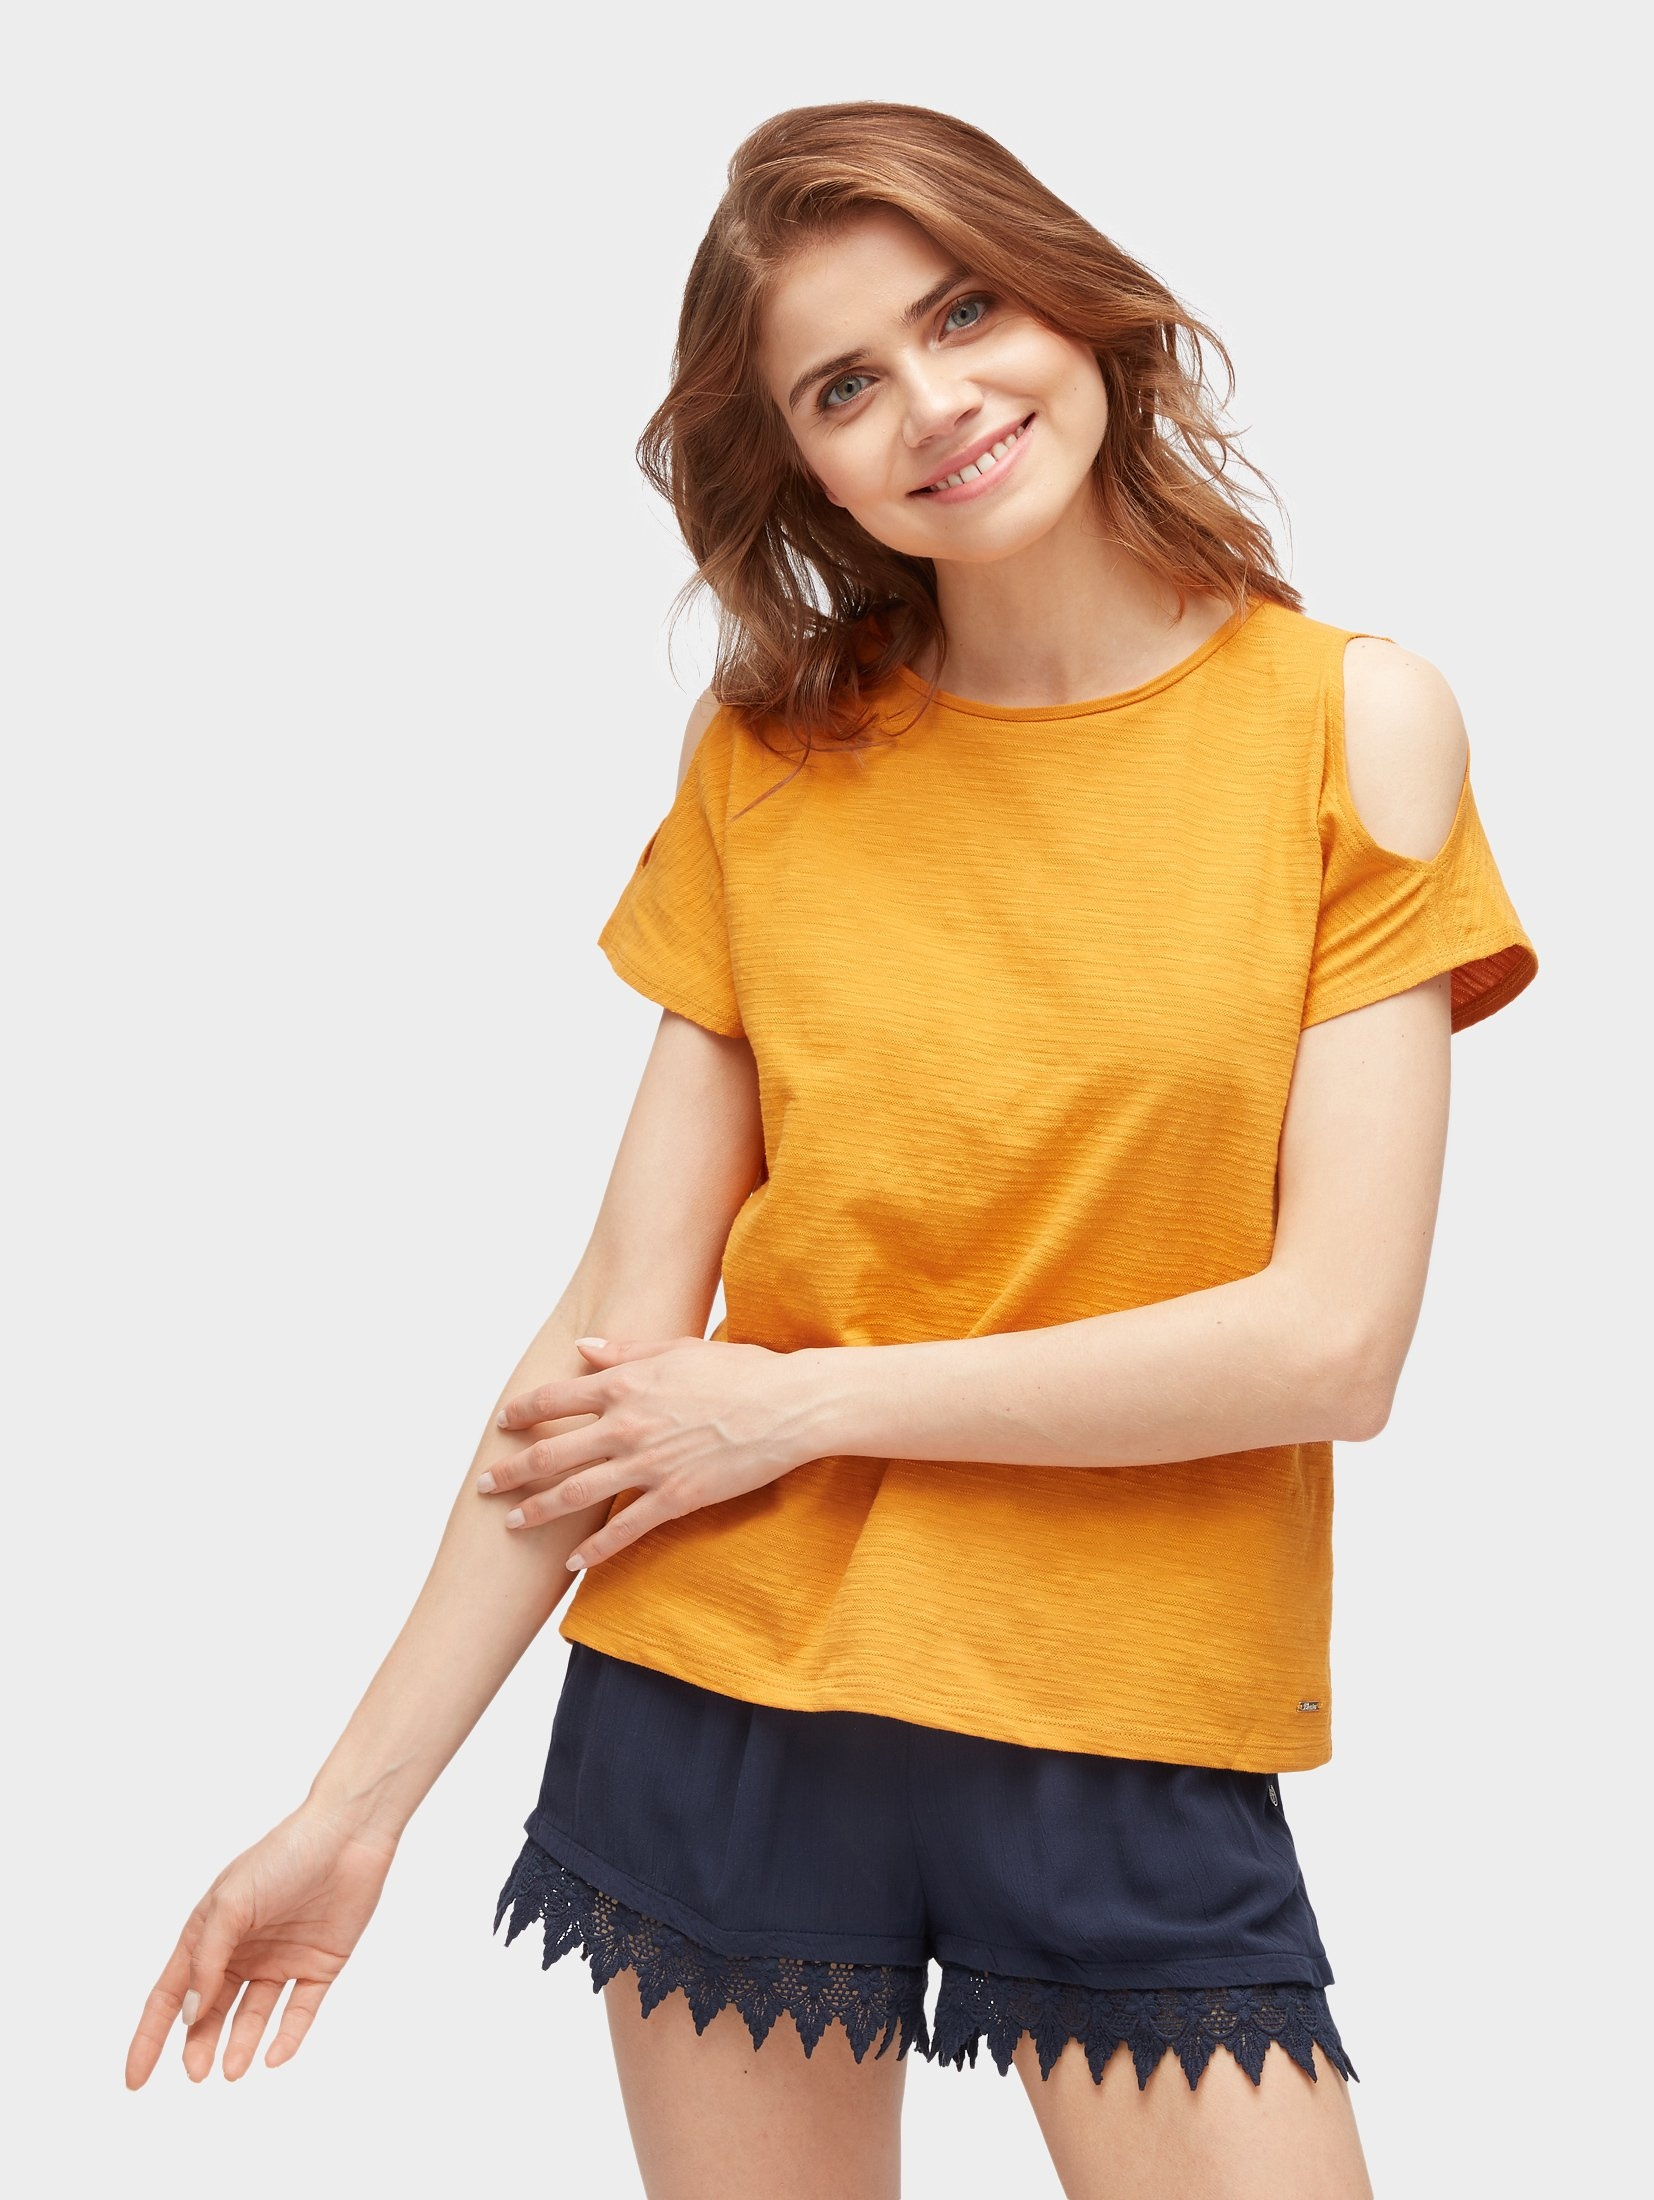 TOM TAILOR Denim T-shirt »Cold-shoulder T-shirt« nu online kopen bij OTTO